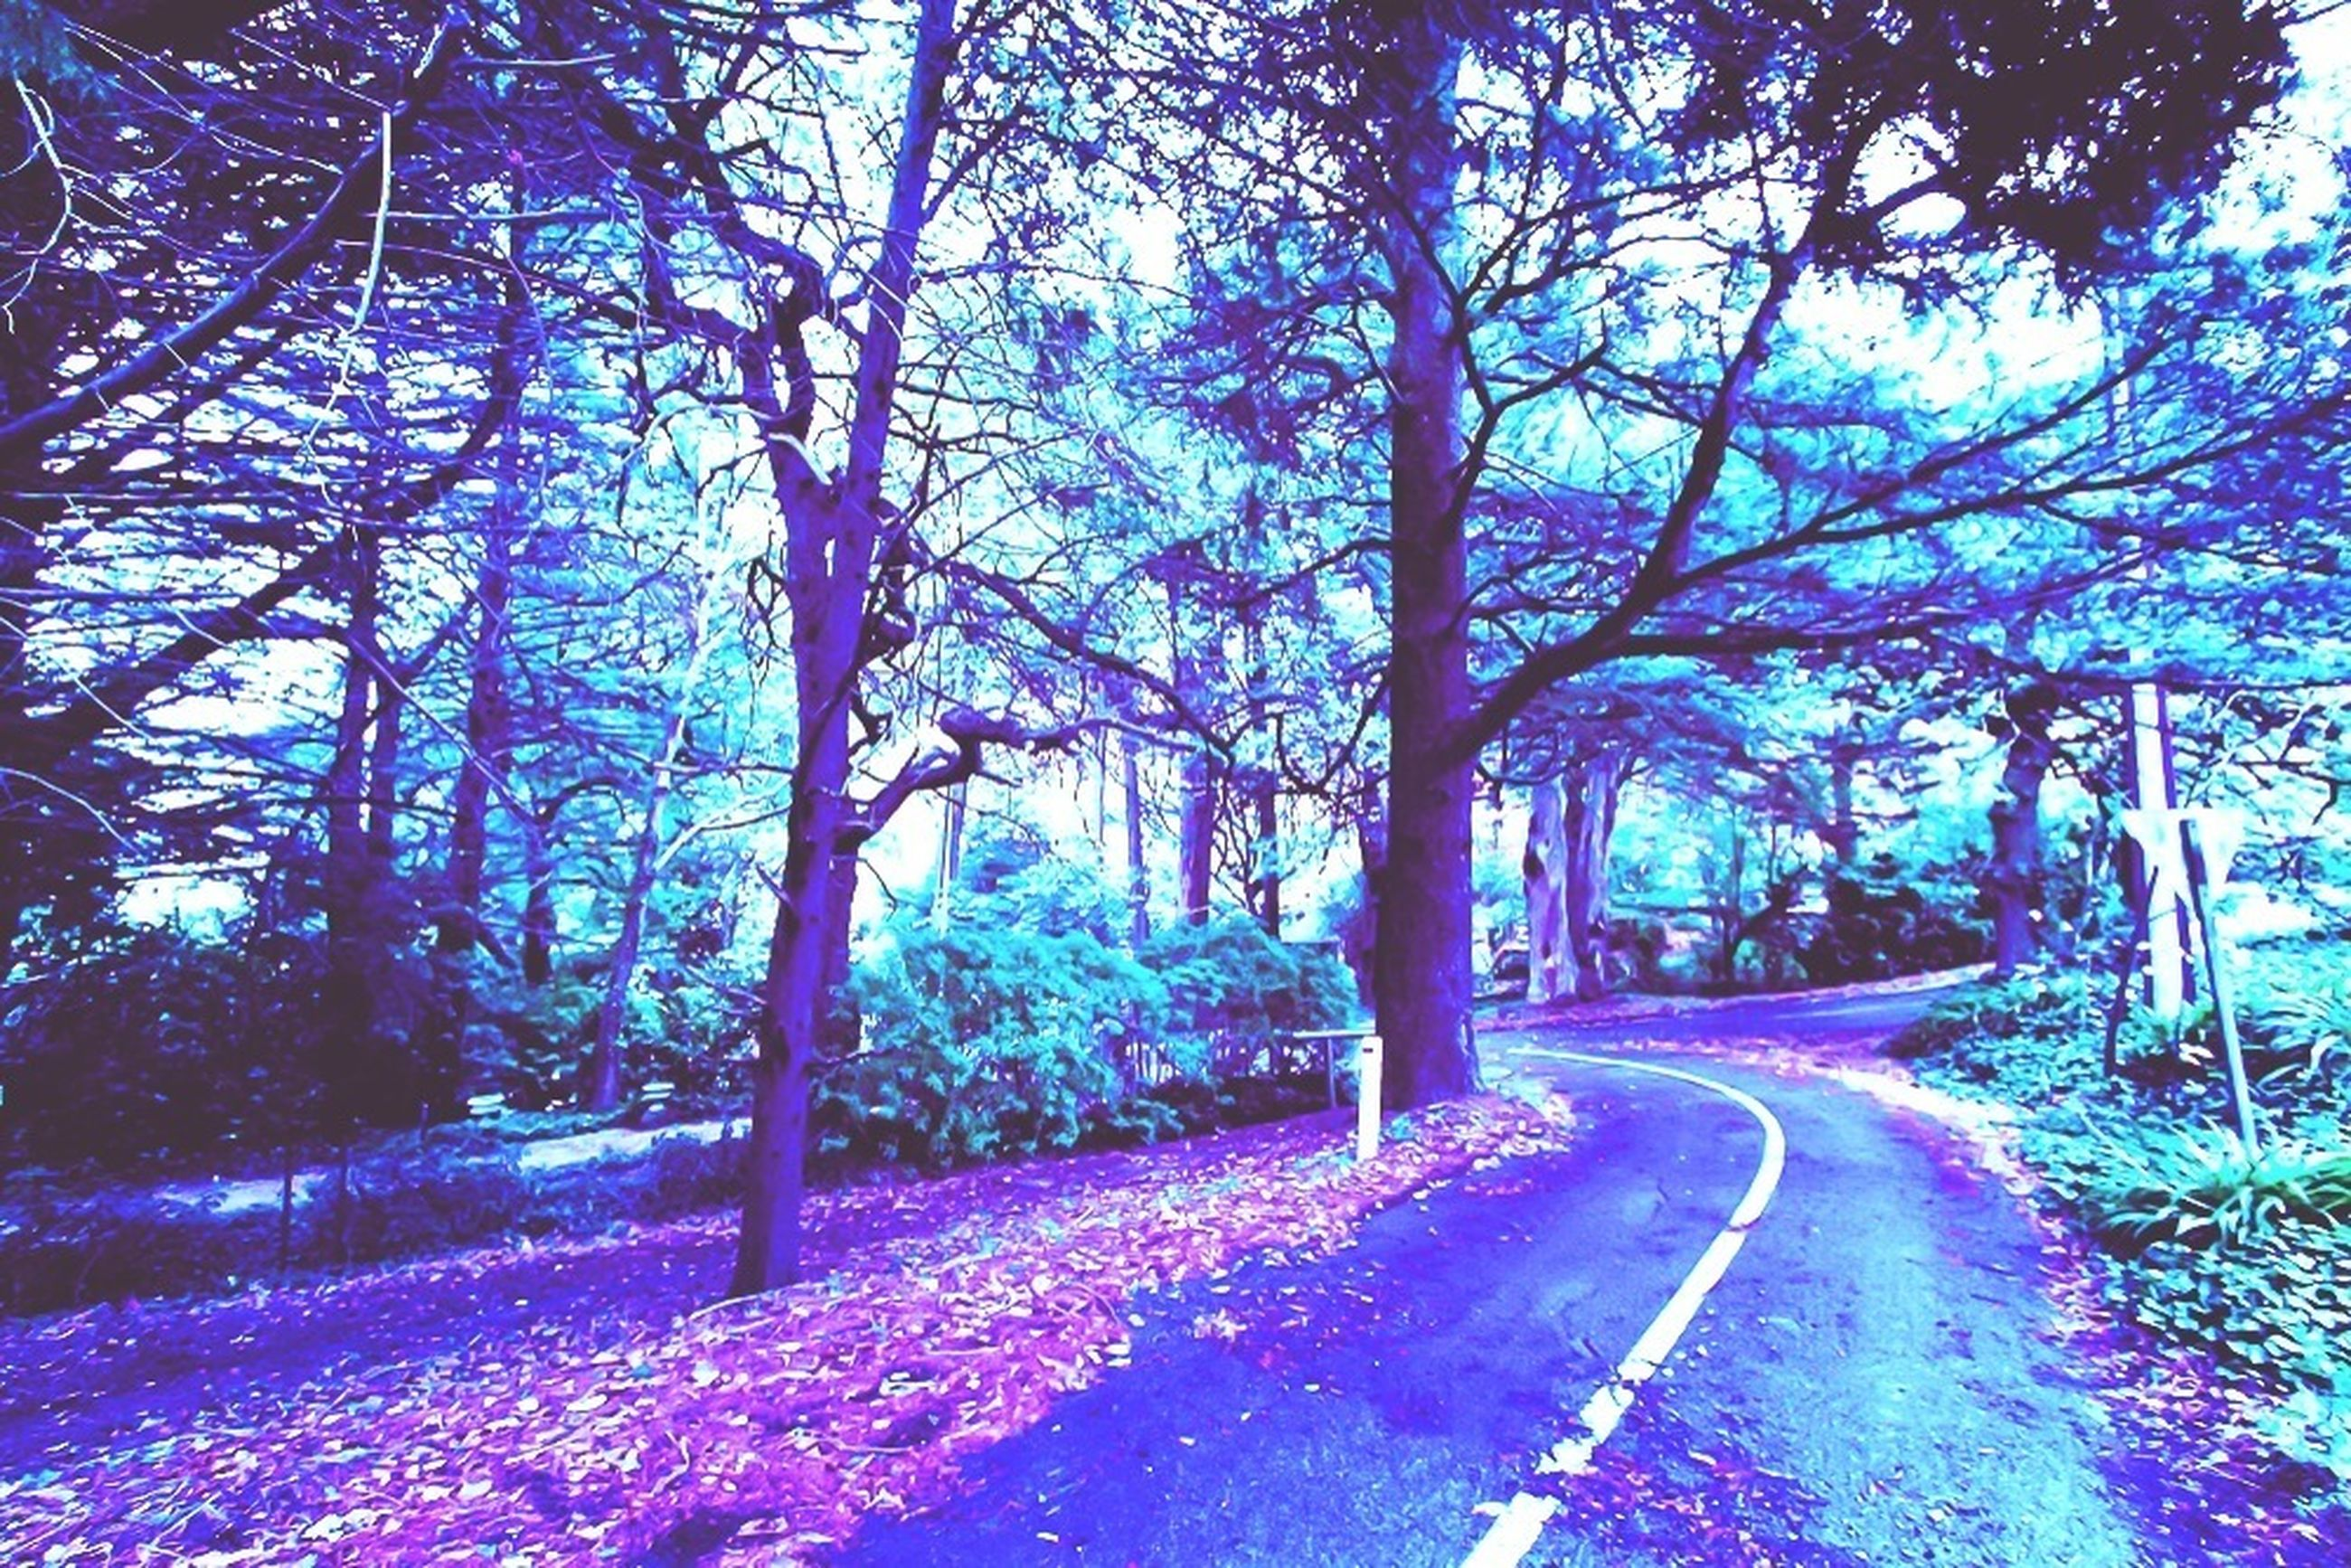 tree, the way forward, road, tranquility, nature, growth, beauty in nature, tranquil scene, branch, diminishing perspective, scenics, transportation, footpath, treelined, sunlight, park - man made space, tree trunk, outdoors, landscape, no people